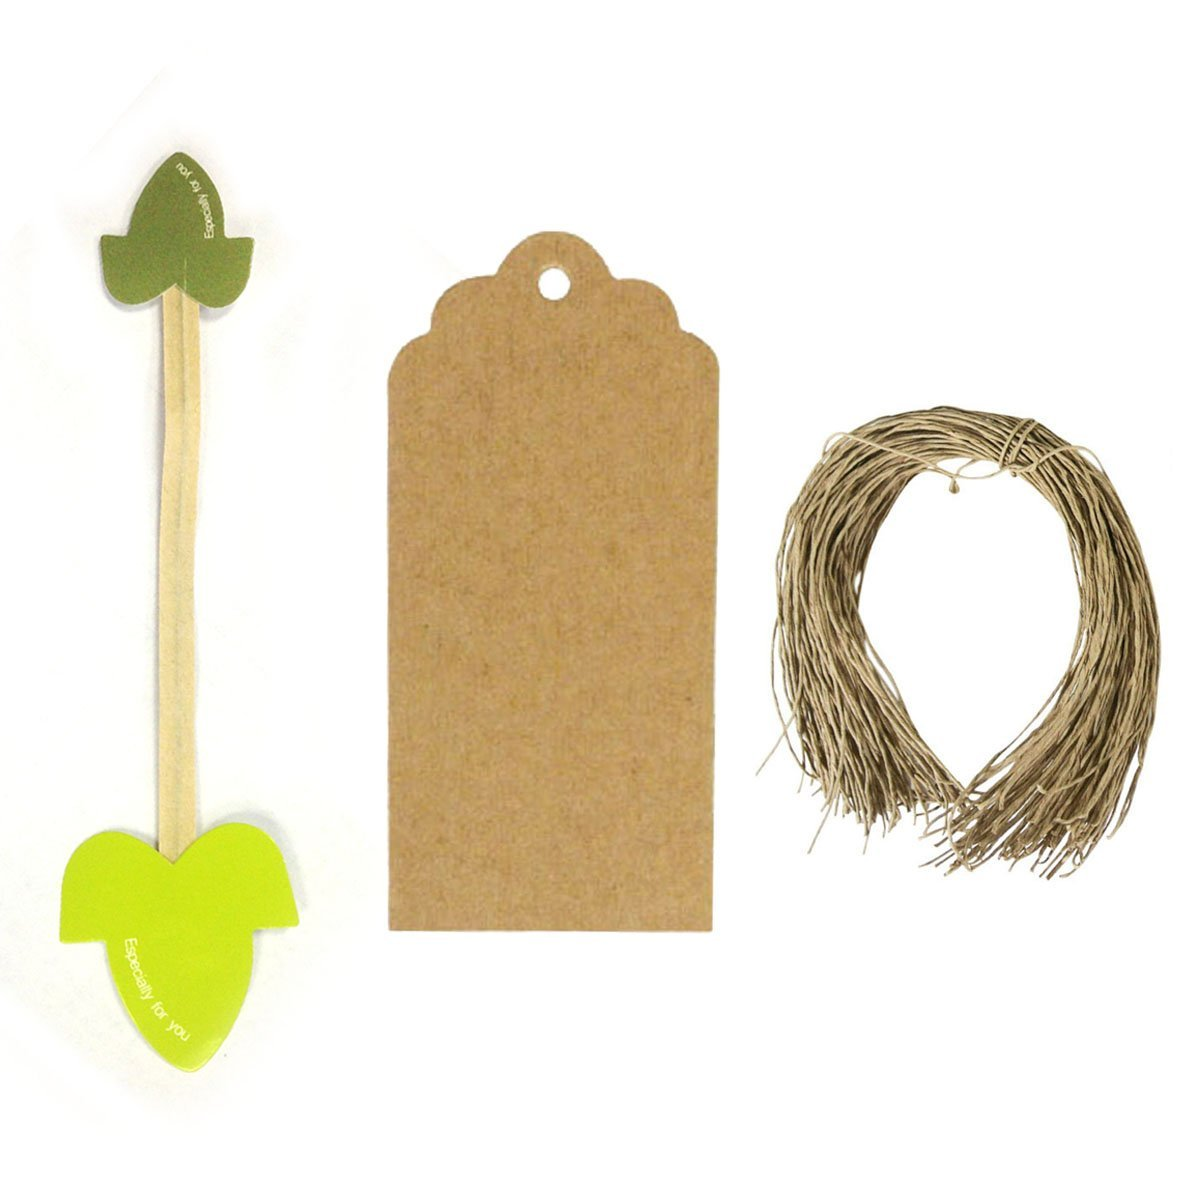 Set of 50 Leaf Twist Ties with 20 Scalloped Gift Tags